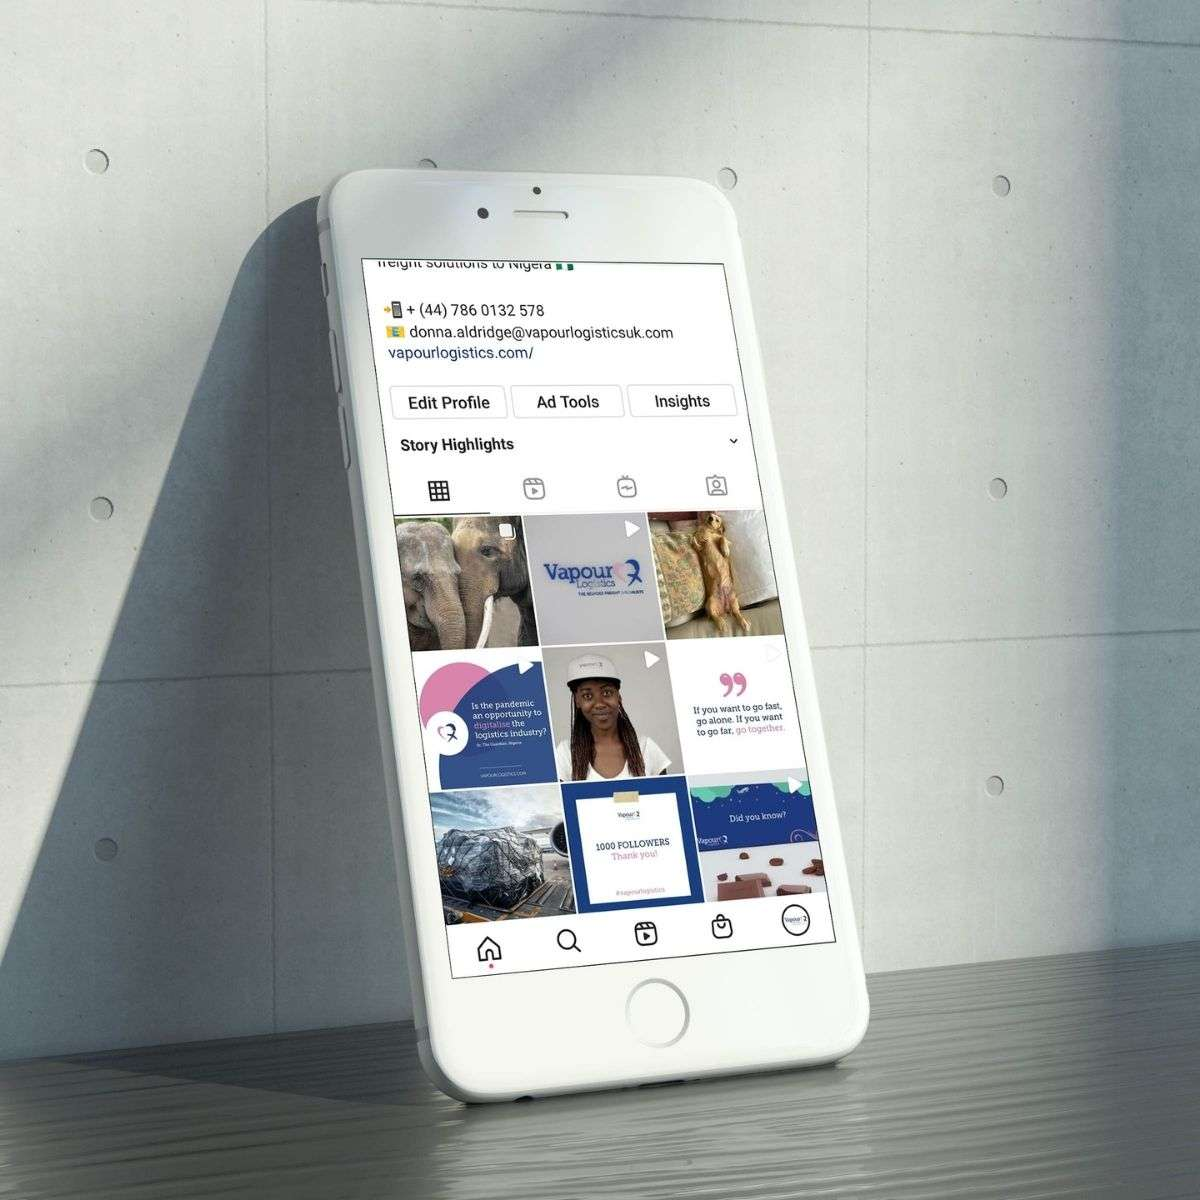 Vapour Logistics Instagram Feed on Mobile